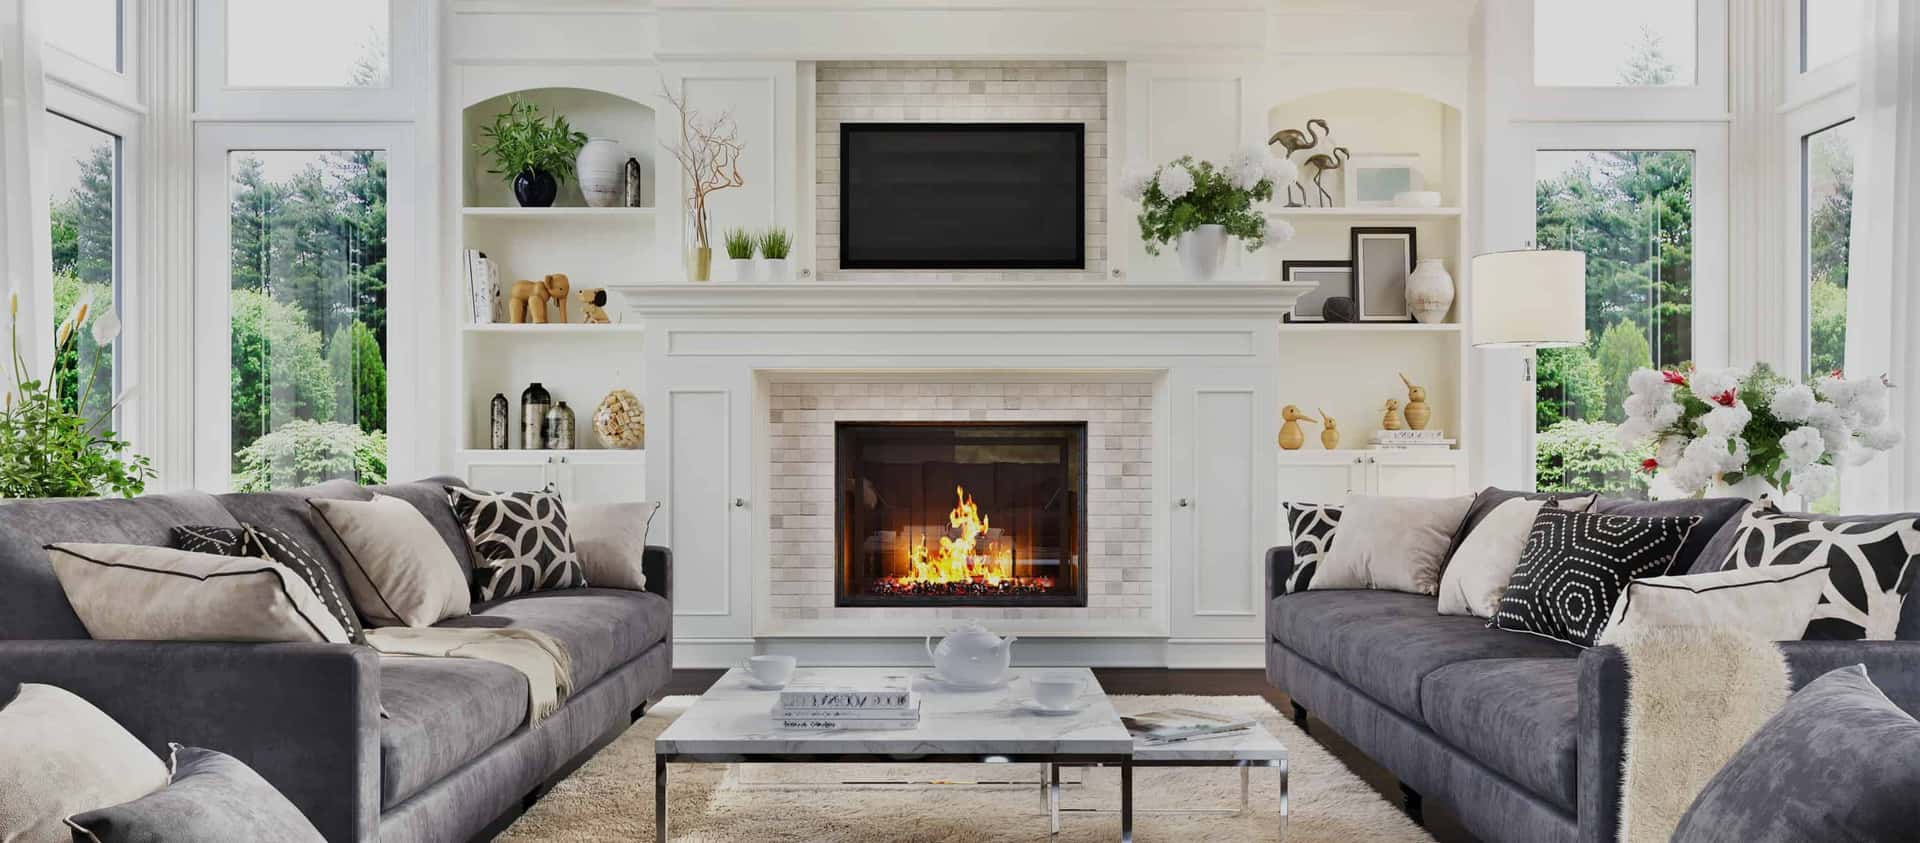 large living room in luxury home with fire burning in the fireplace